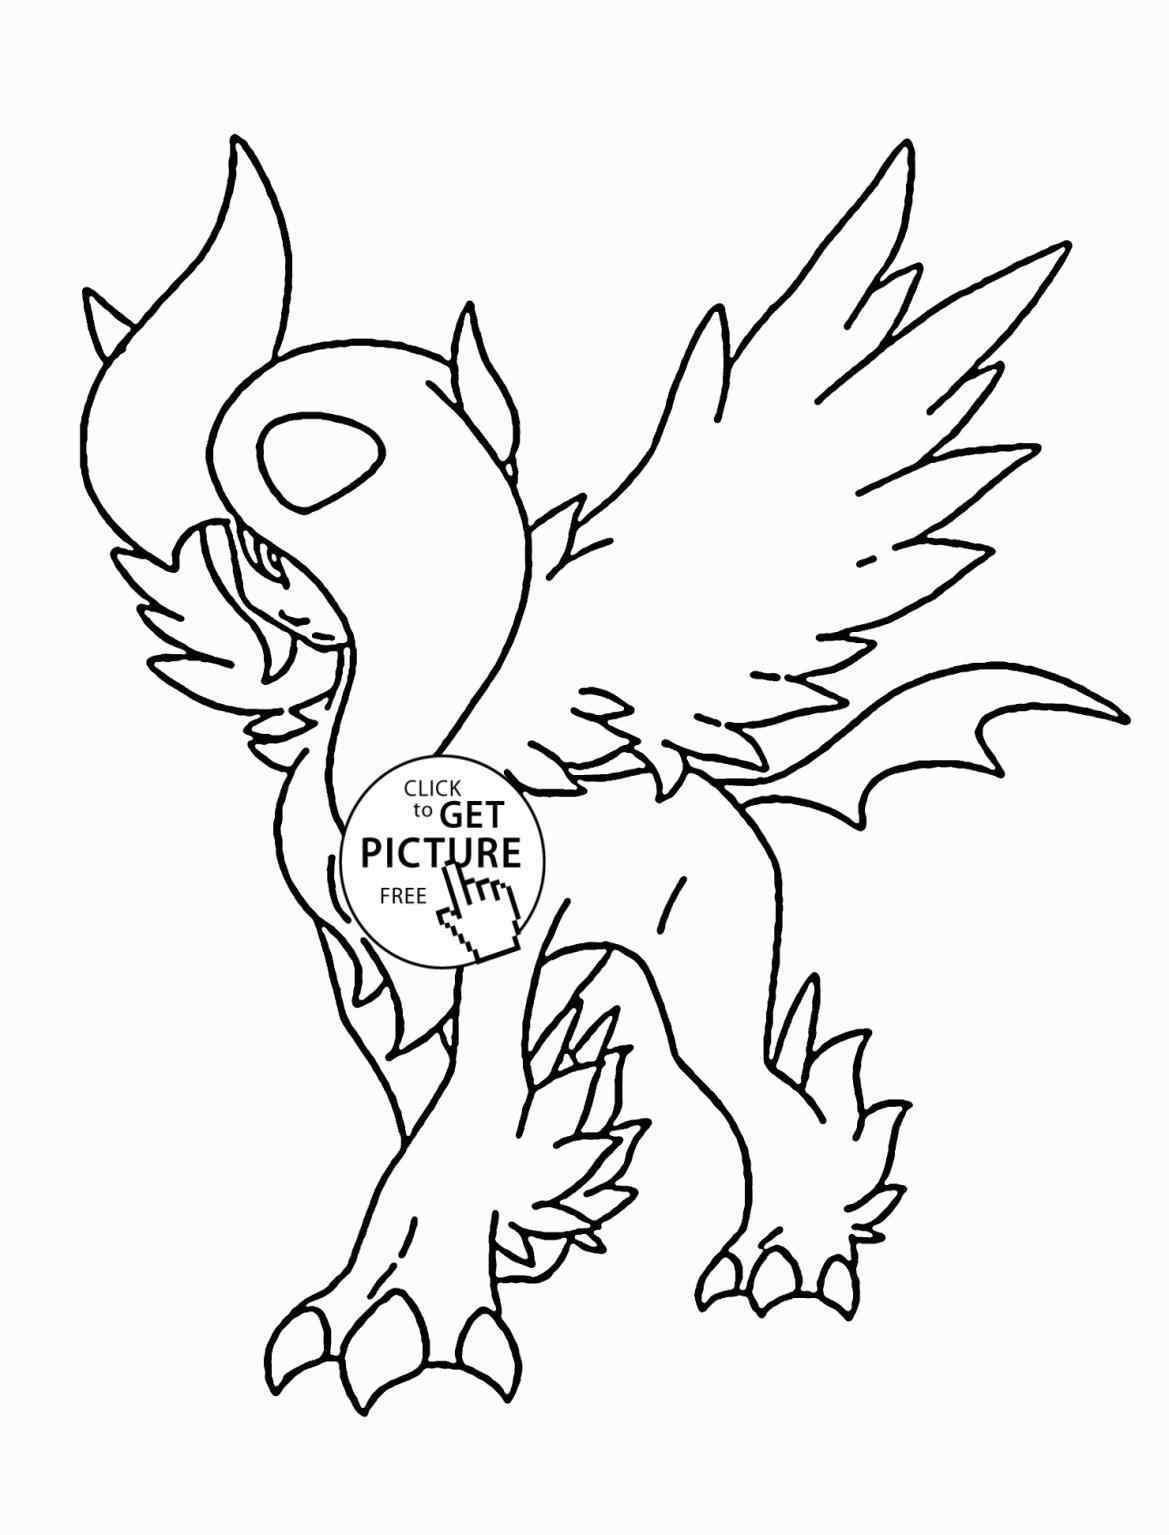 Preschool Coloring Sheets: Pokemon Coloring Pages | 1535x1169